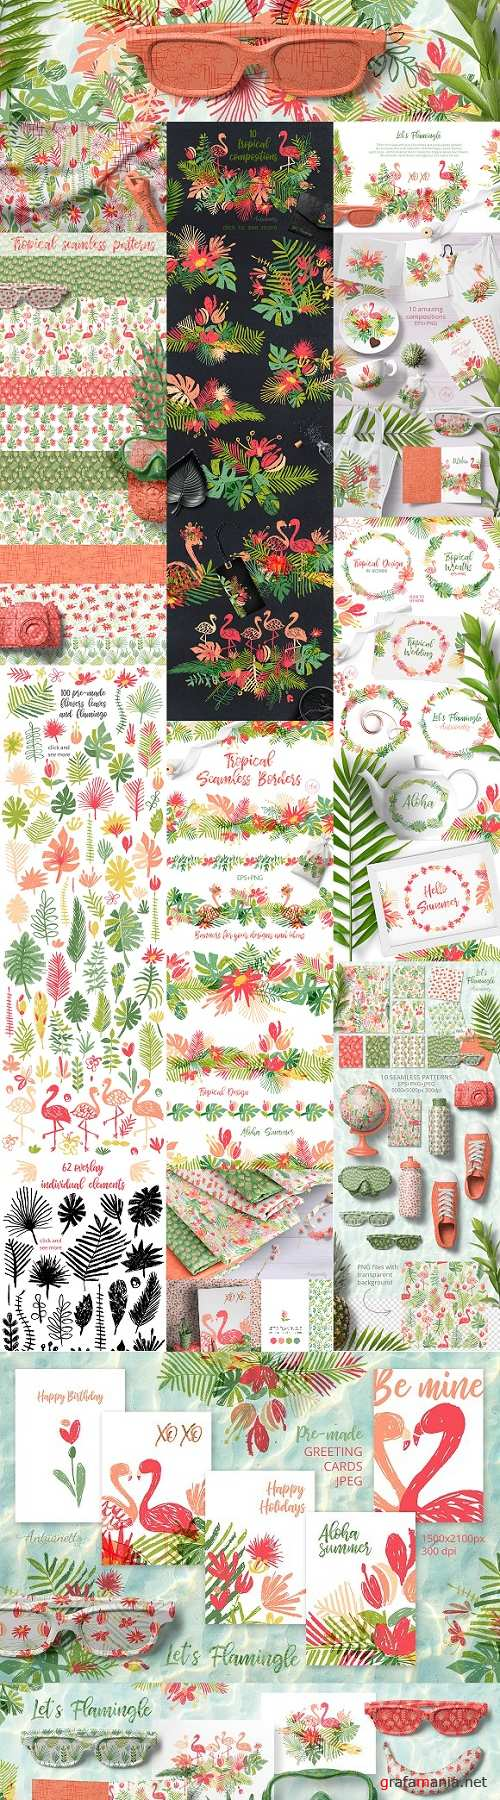 Lets Flamingle tropical collection 2441988